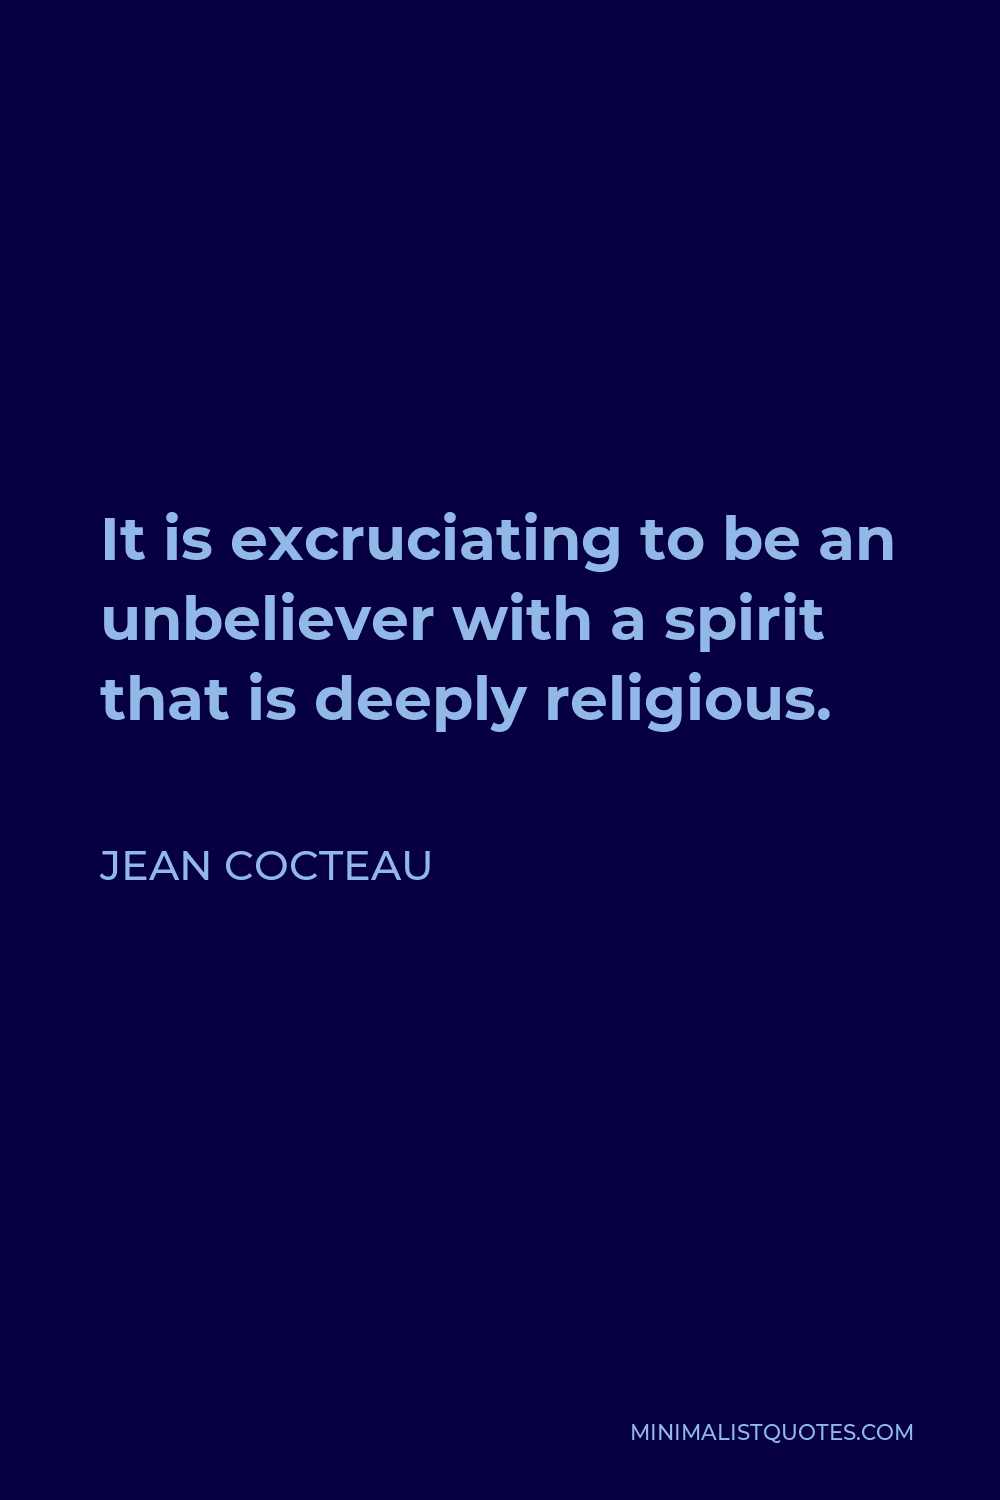 Jean Cocteau Quote - It is excruciating to be an unbeliever with a spirit that is deeply religious.